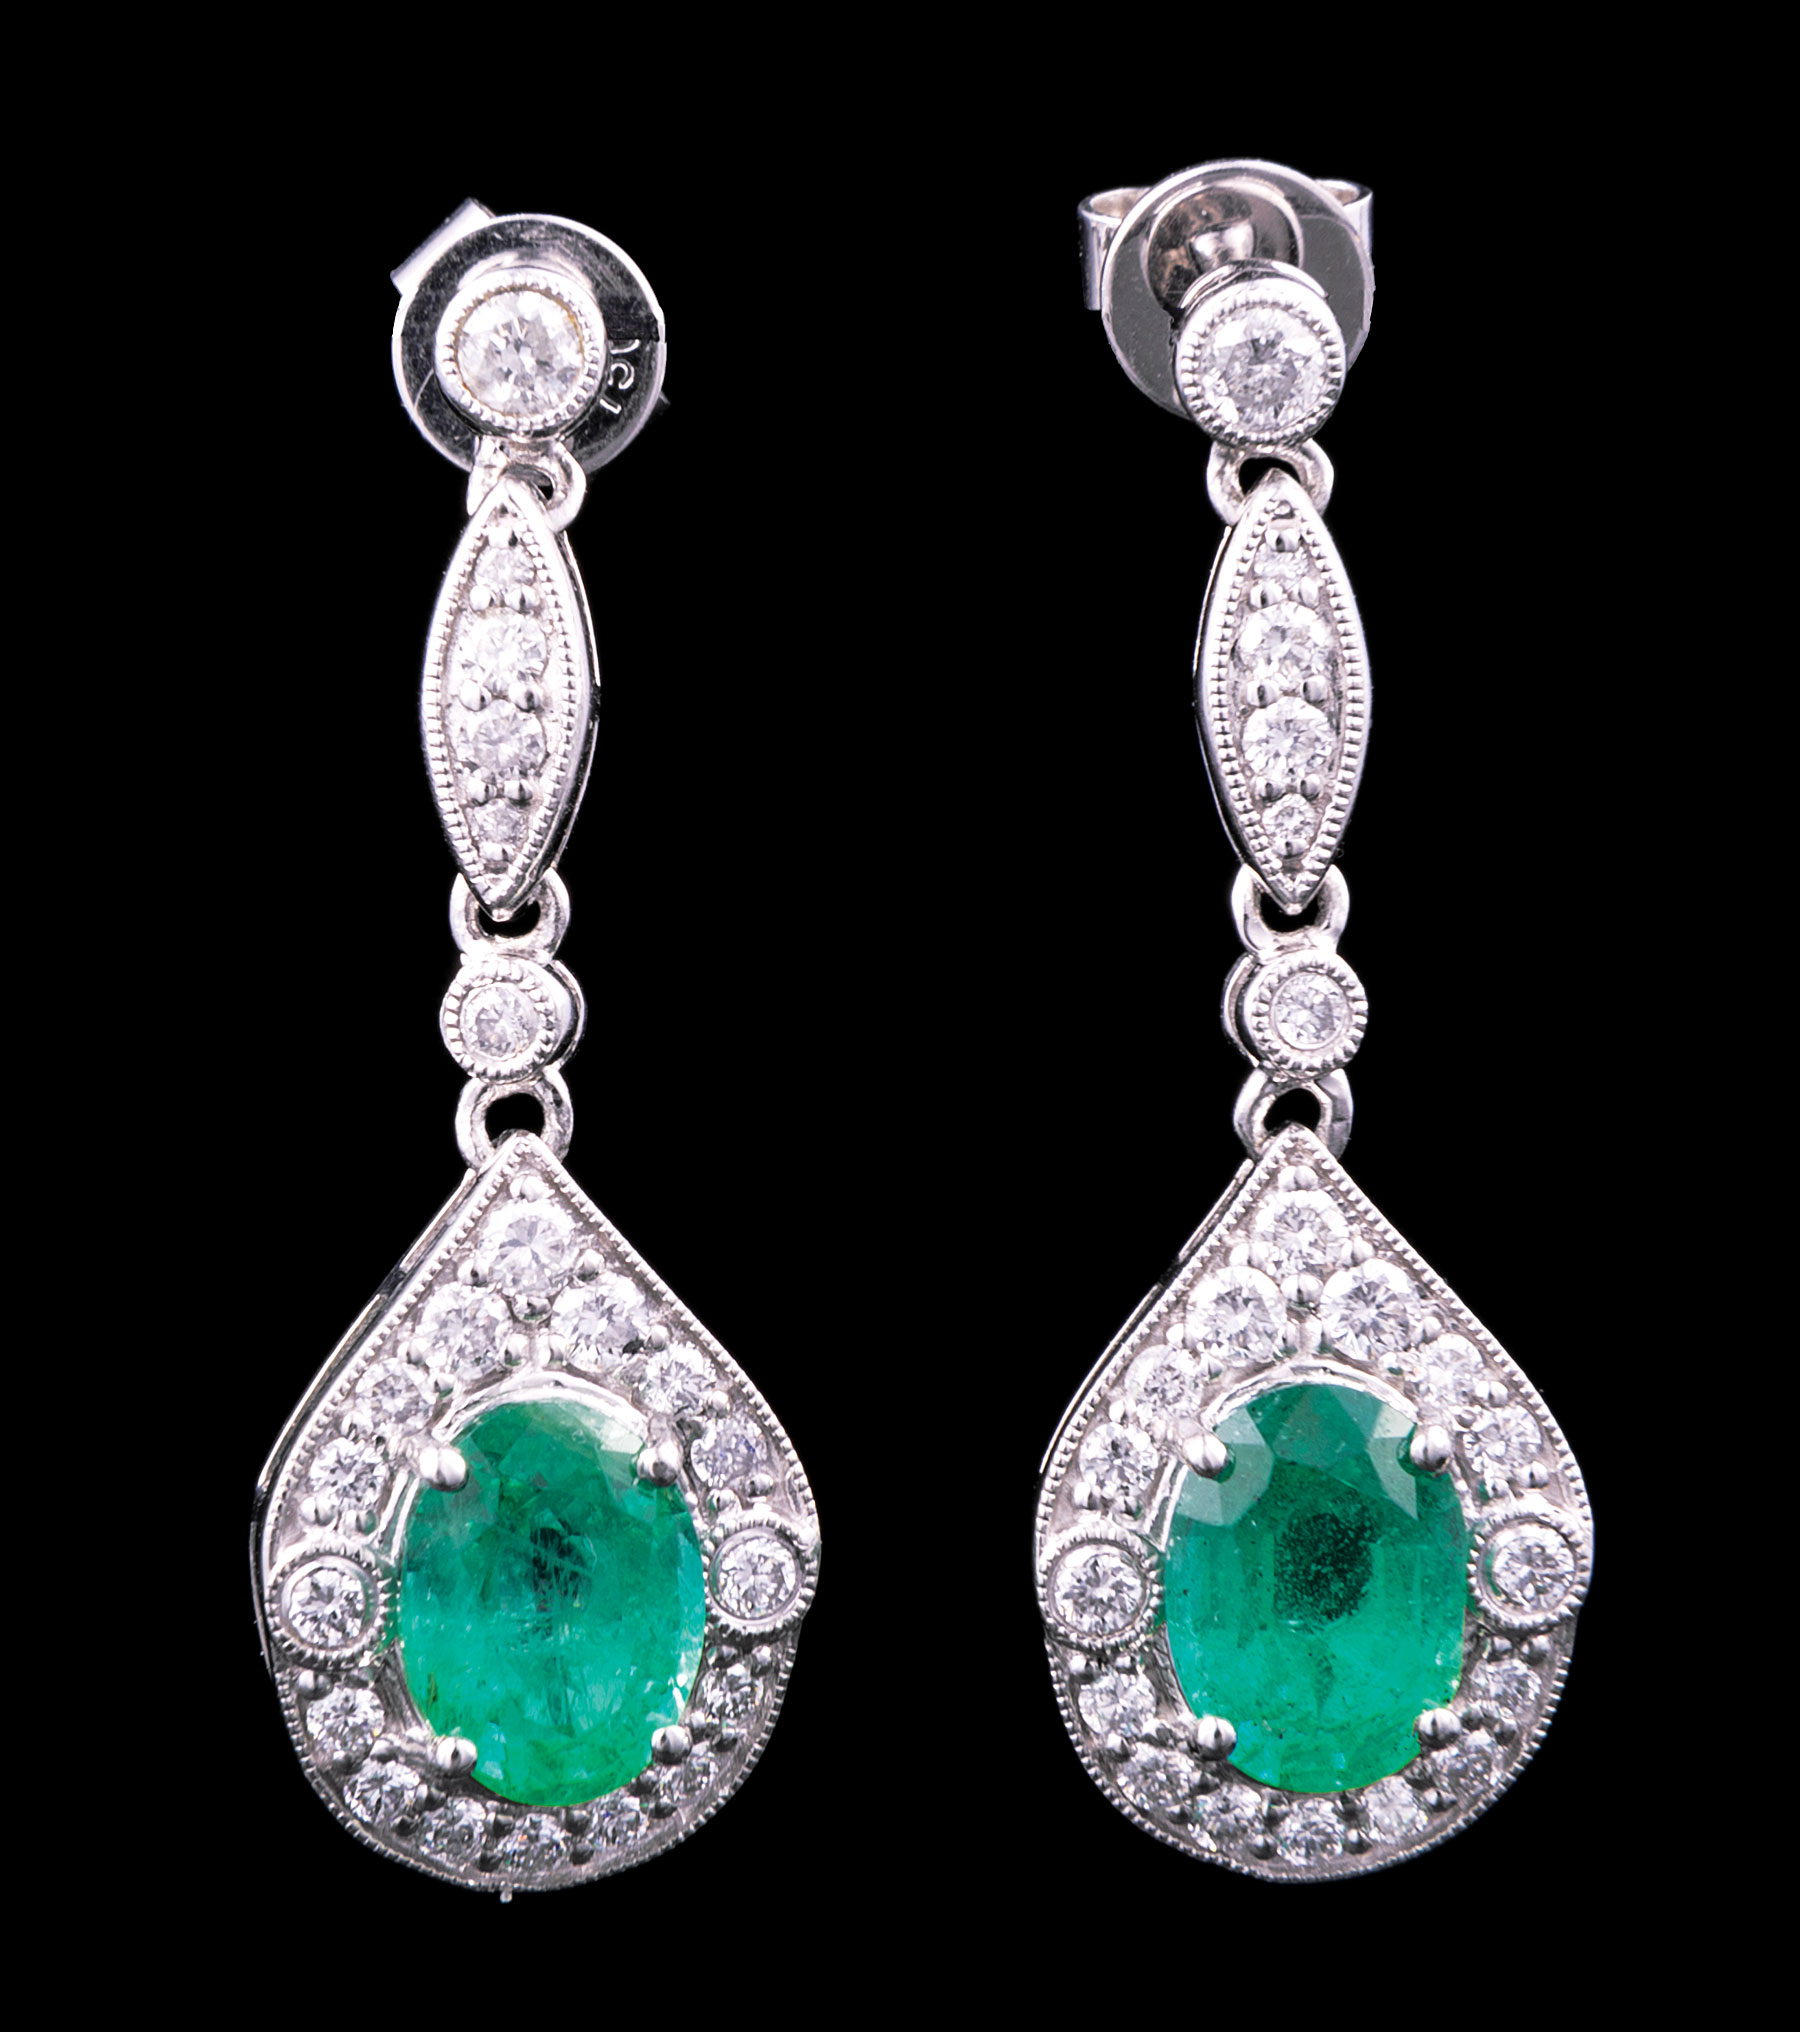 Lot 581 - Pair of 18 kt. White Gold, Emerald and Diamond Earrings , 2 prong set emeralds with brilliant cut